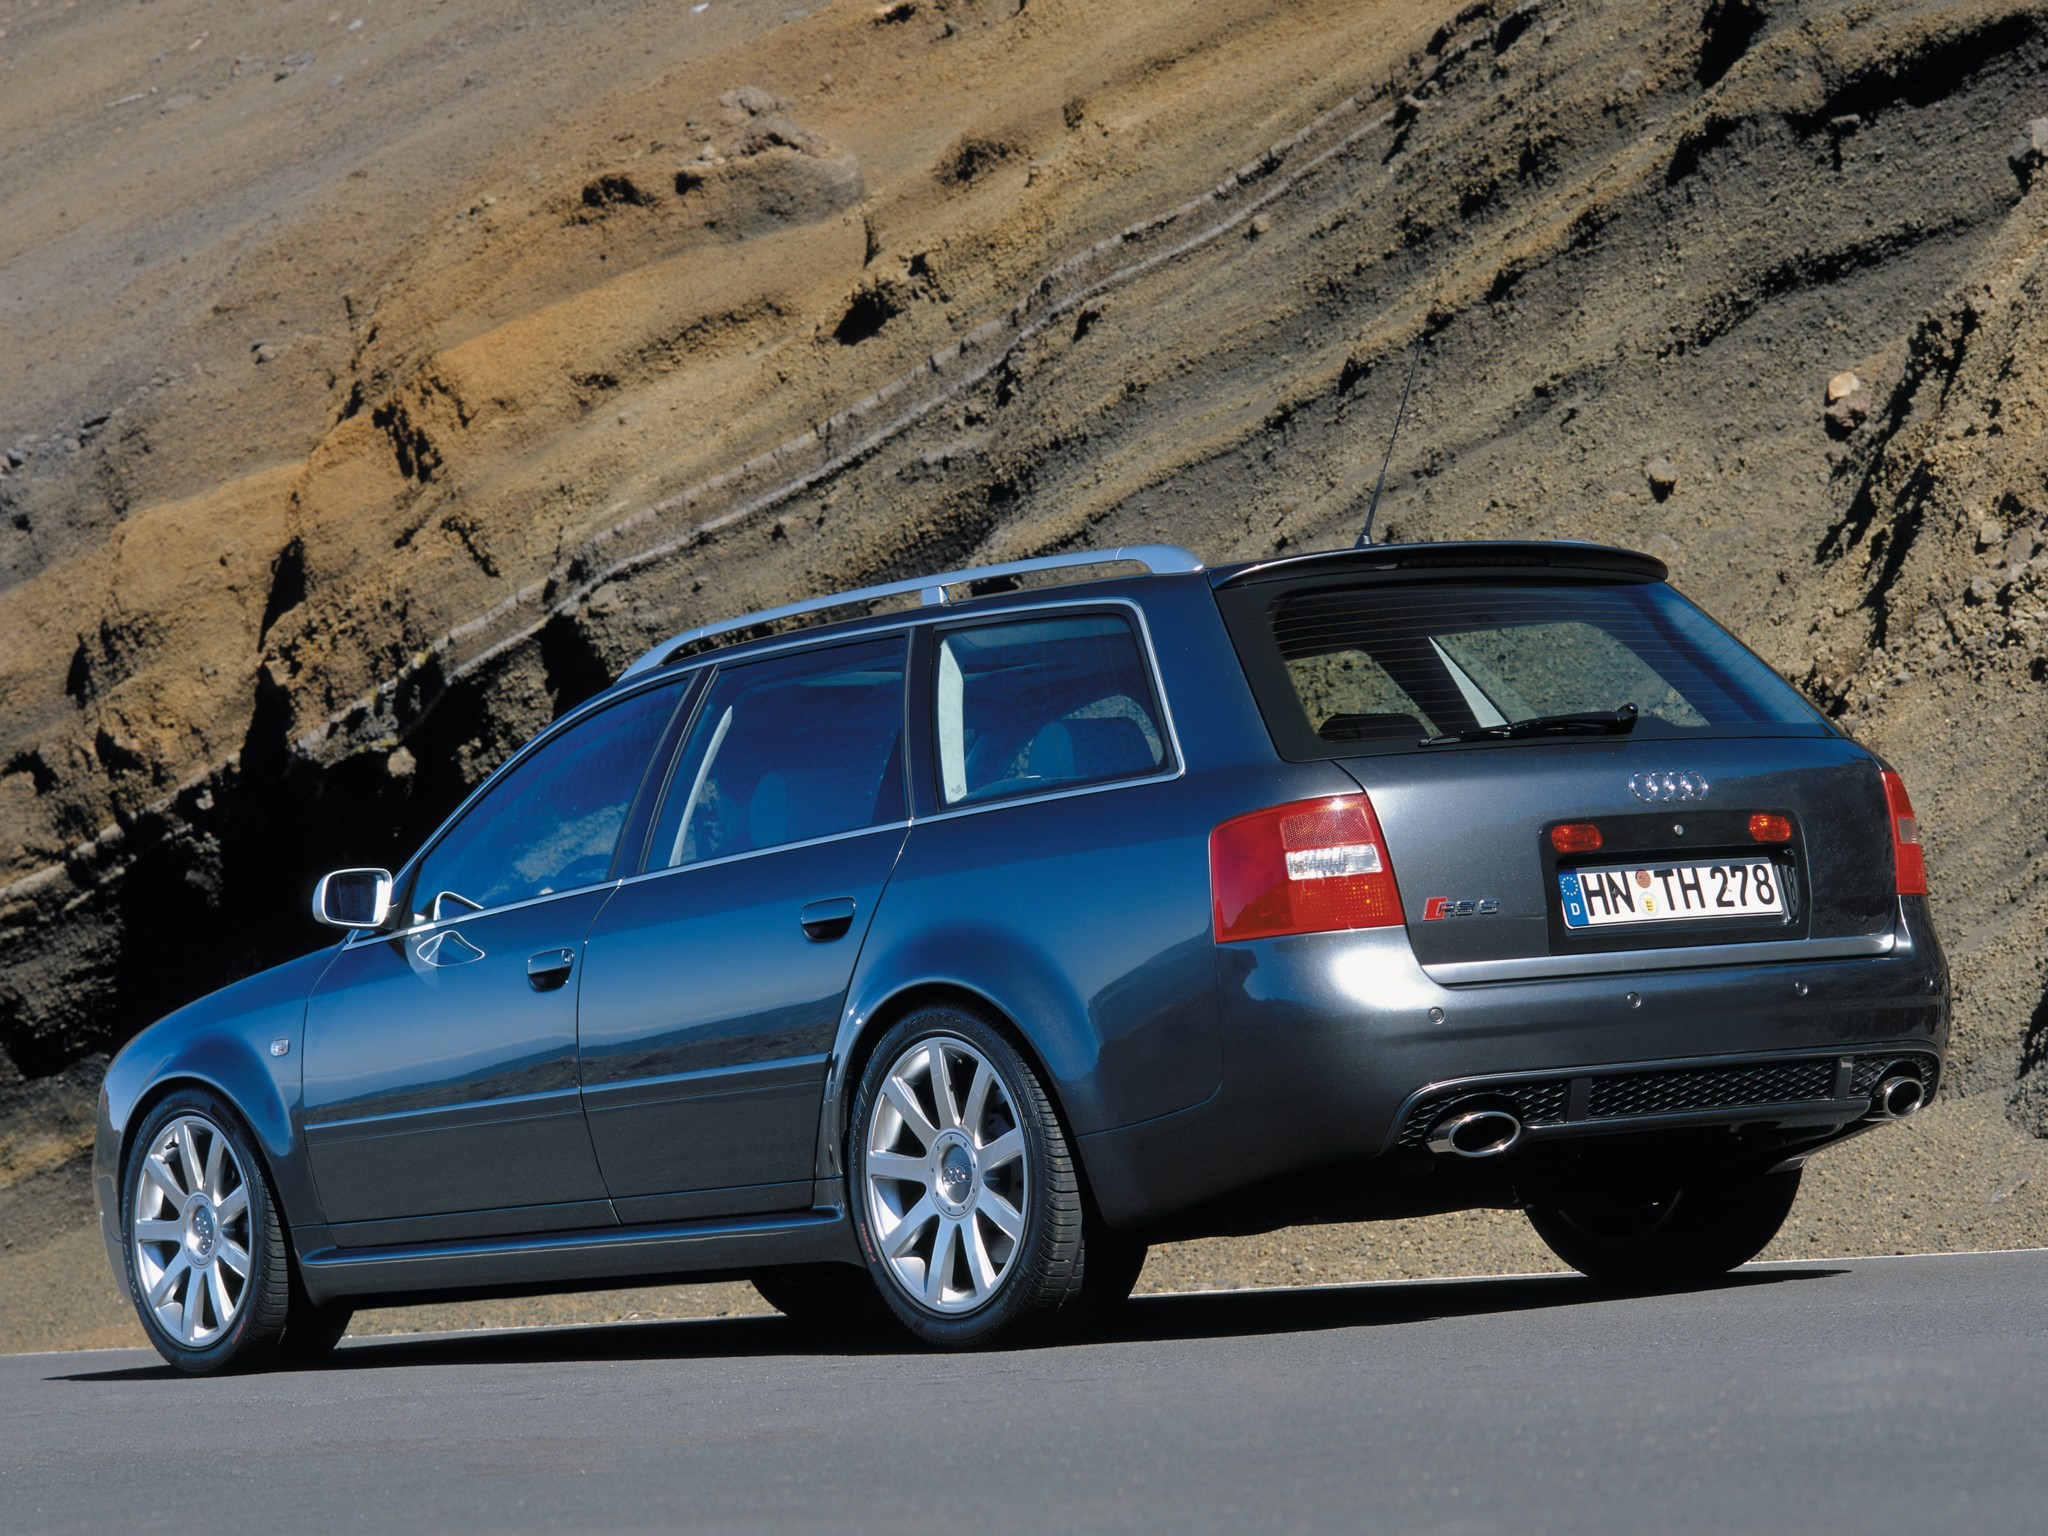 2002 audi a6 avant 4b c5 pictures information and specs auto. Black Bedroom Furniture Sets. Home Design Ideas